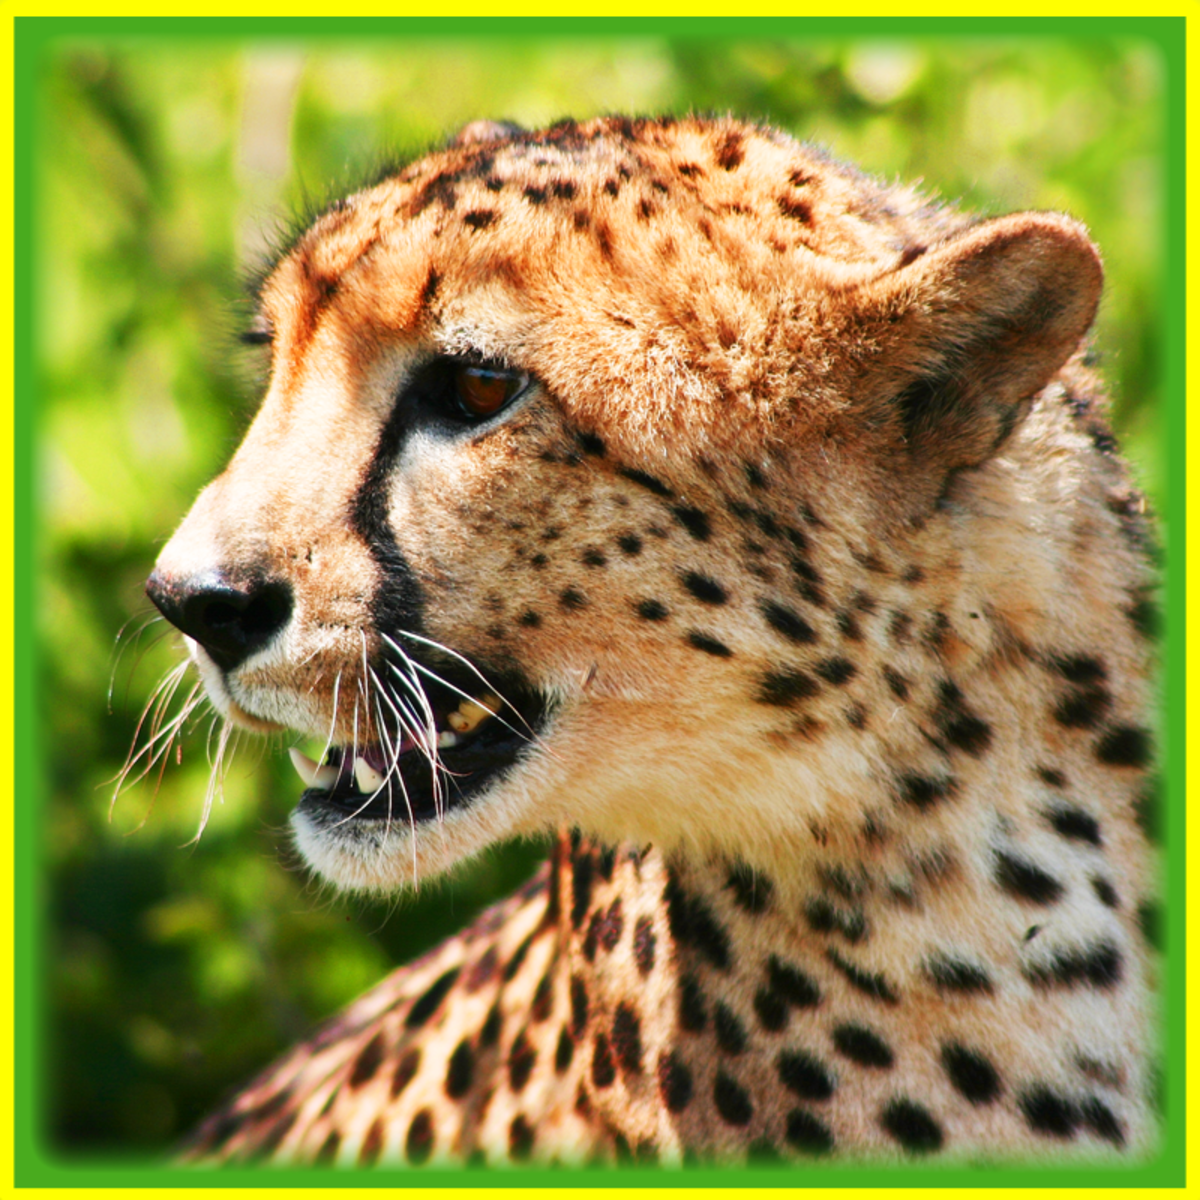 Relative Top Speeds of Common Land Animals: Is the Cheetah Really the Fastest?